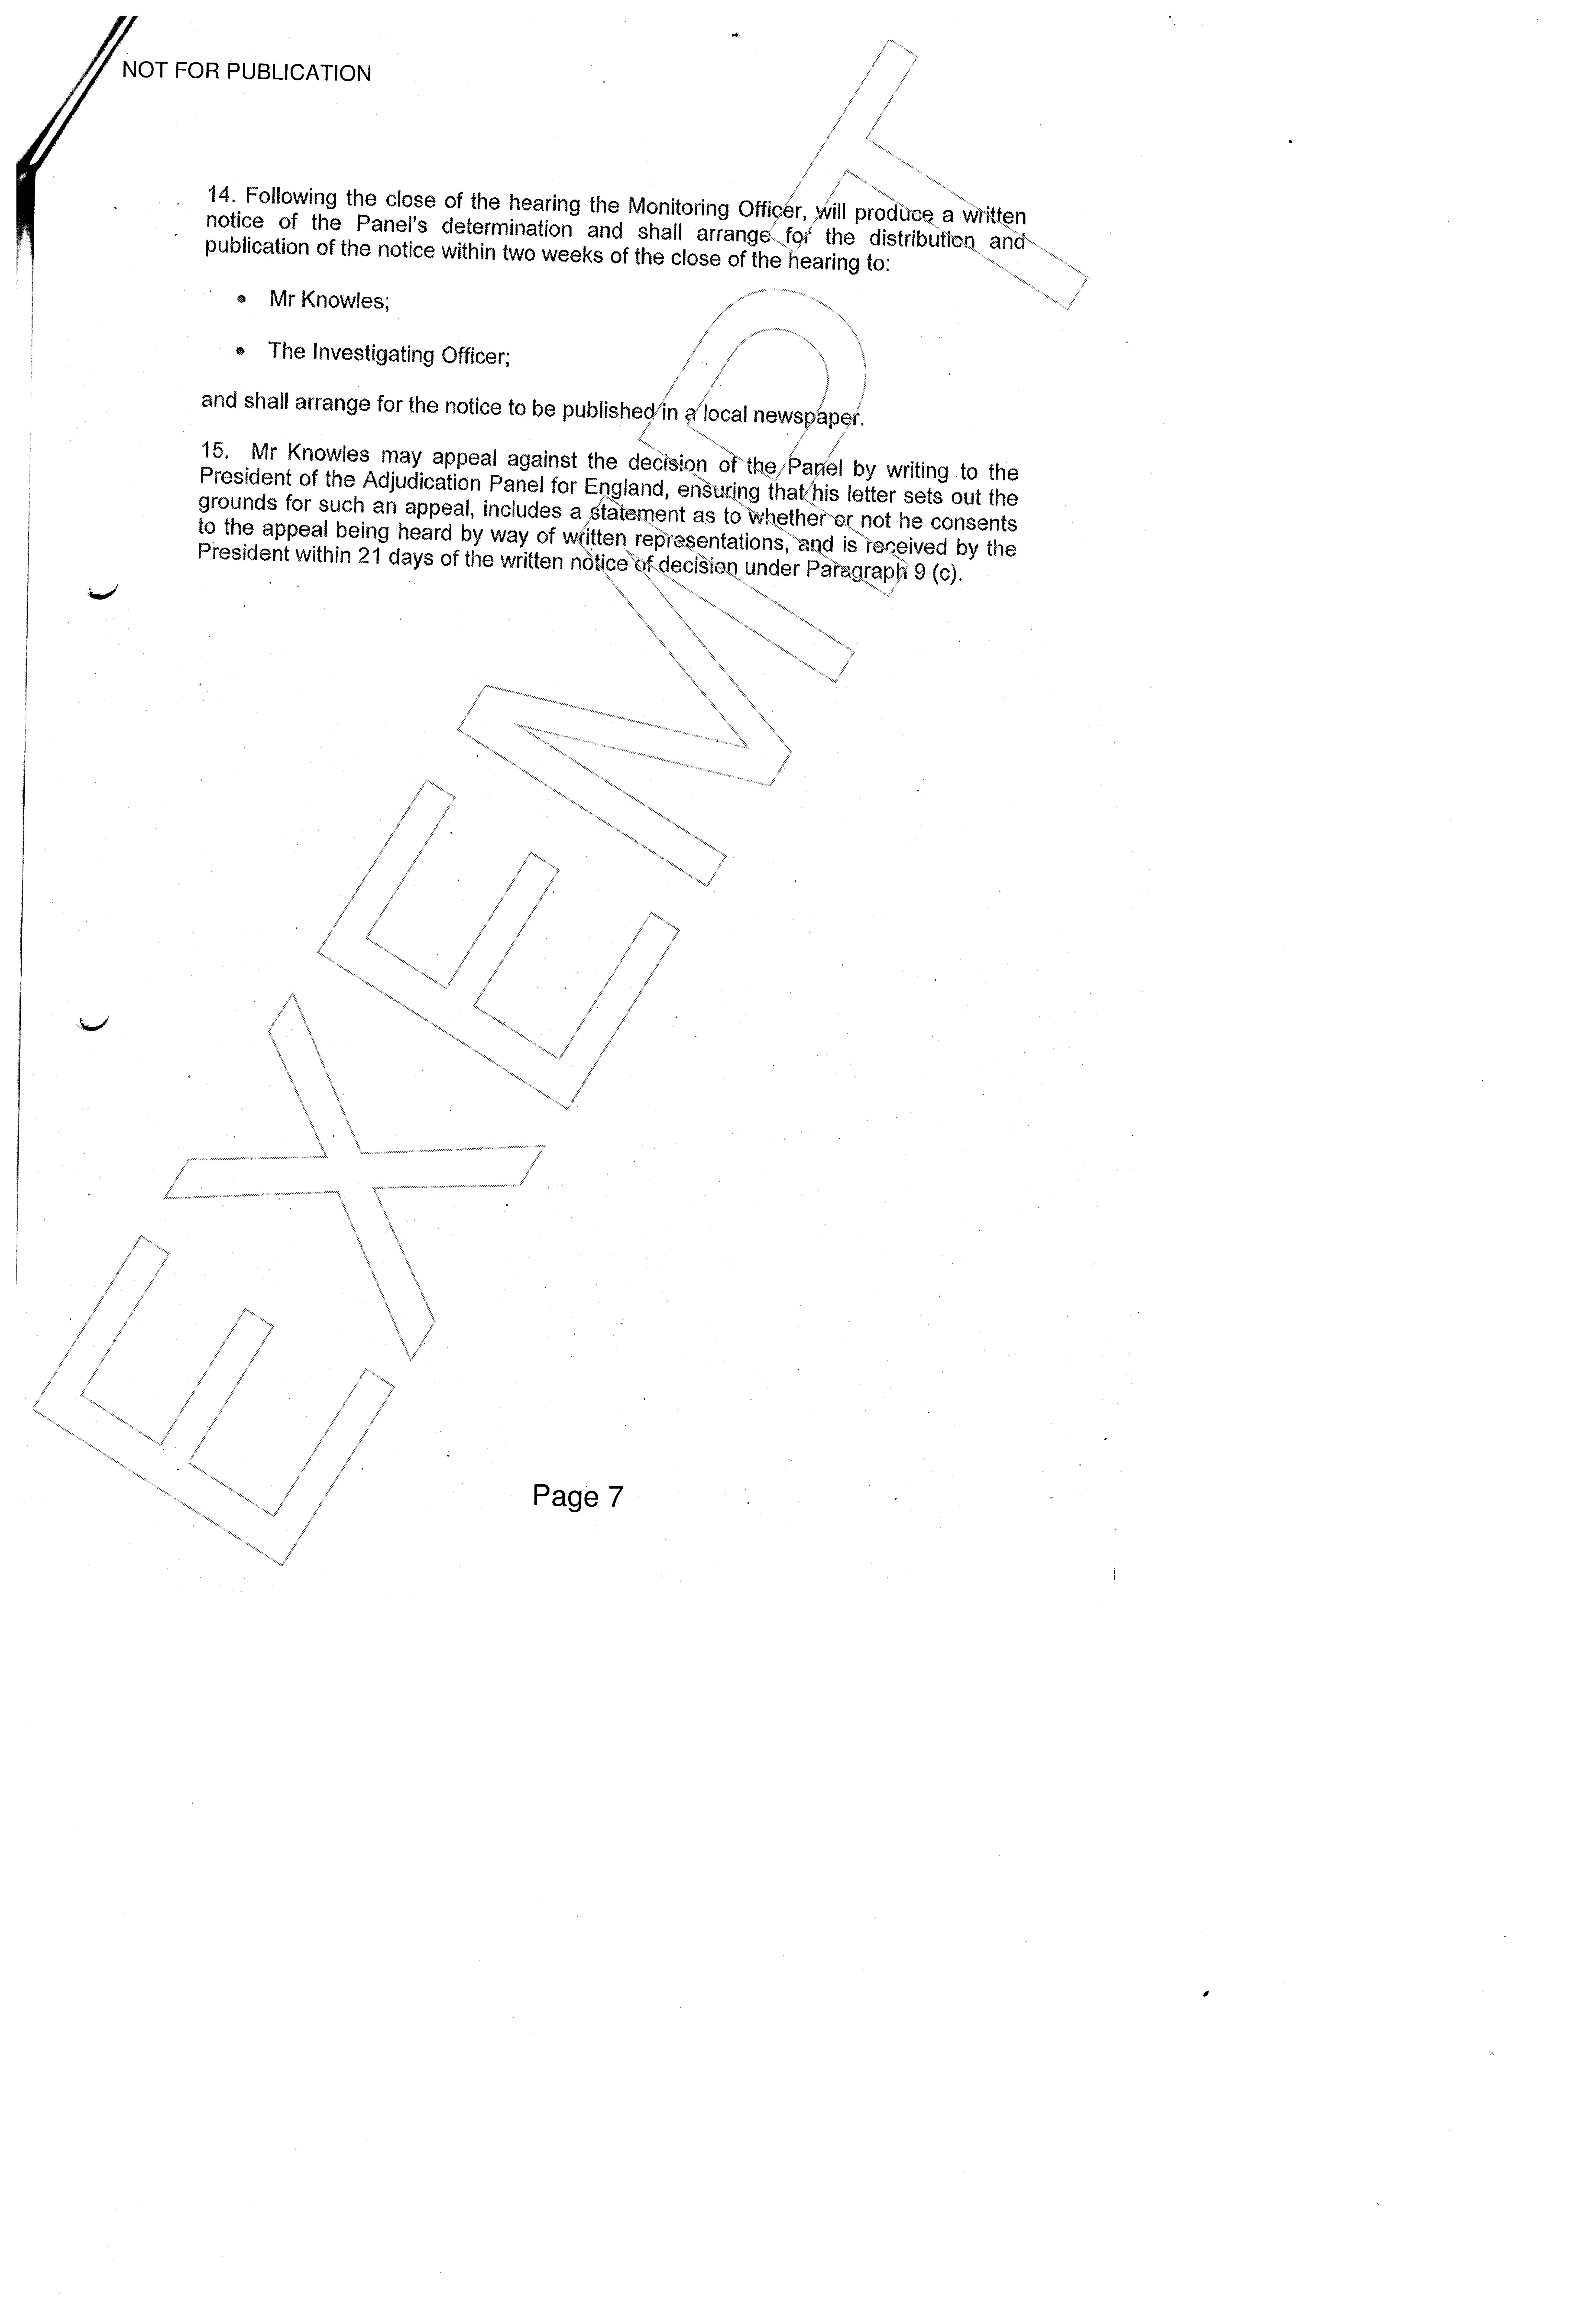 Agenda Item 3 Report of the Monitoring Officer Page 7 of 7